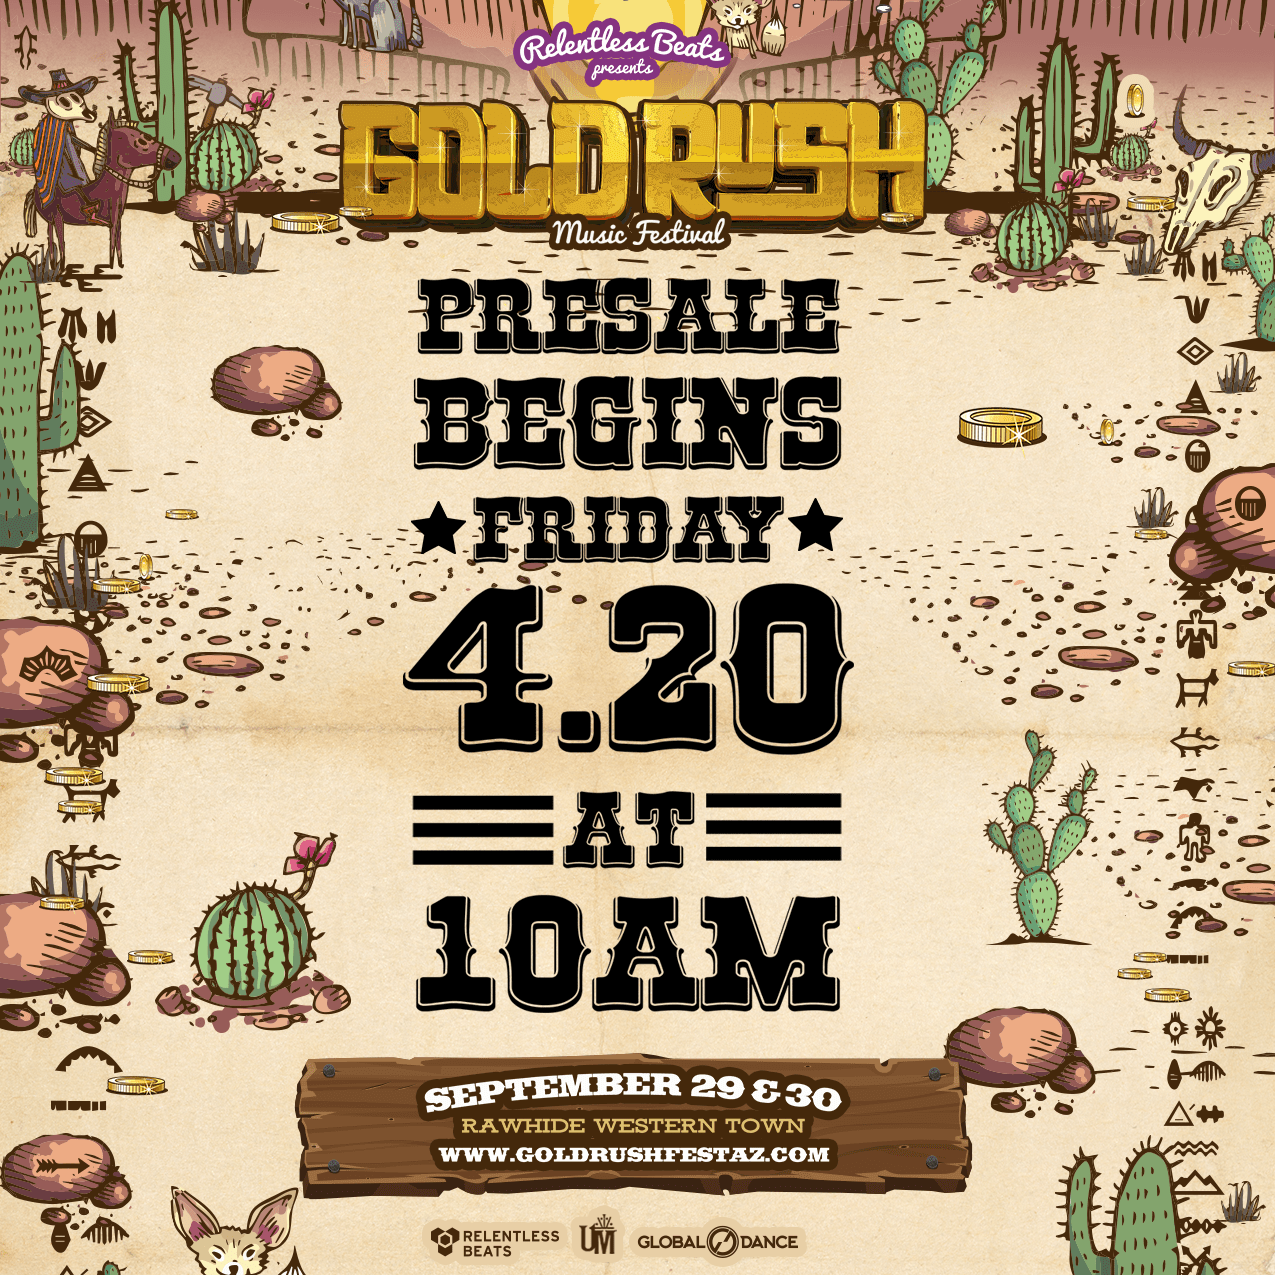 Relentless Beats announces the return of Goldrush Music Festival on September 29 & 30